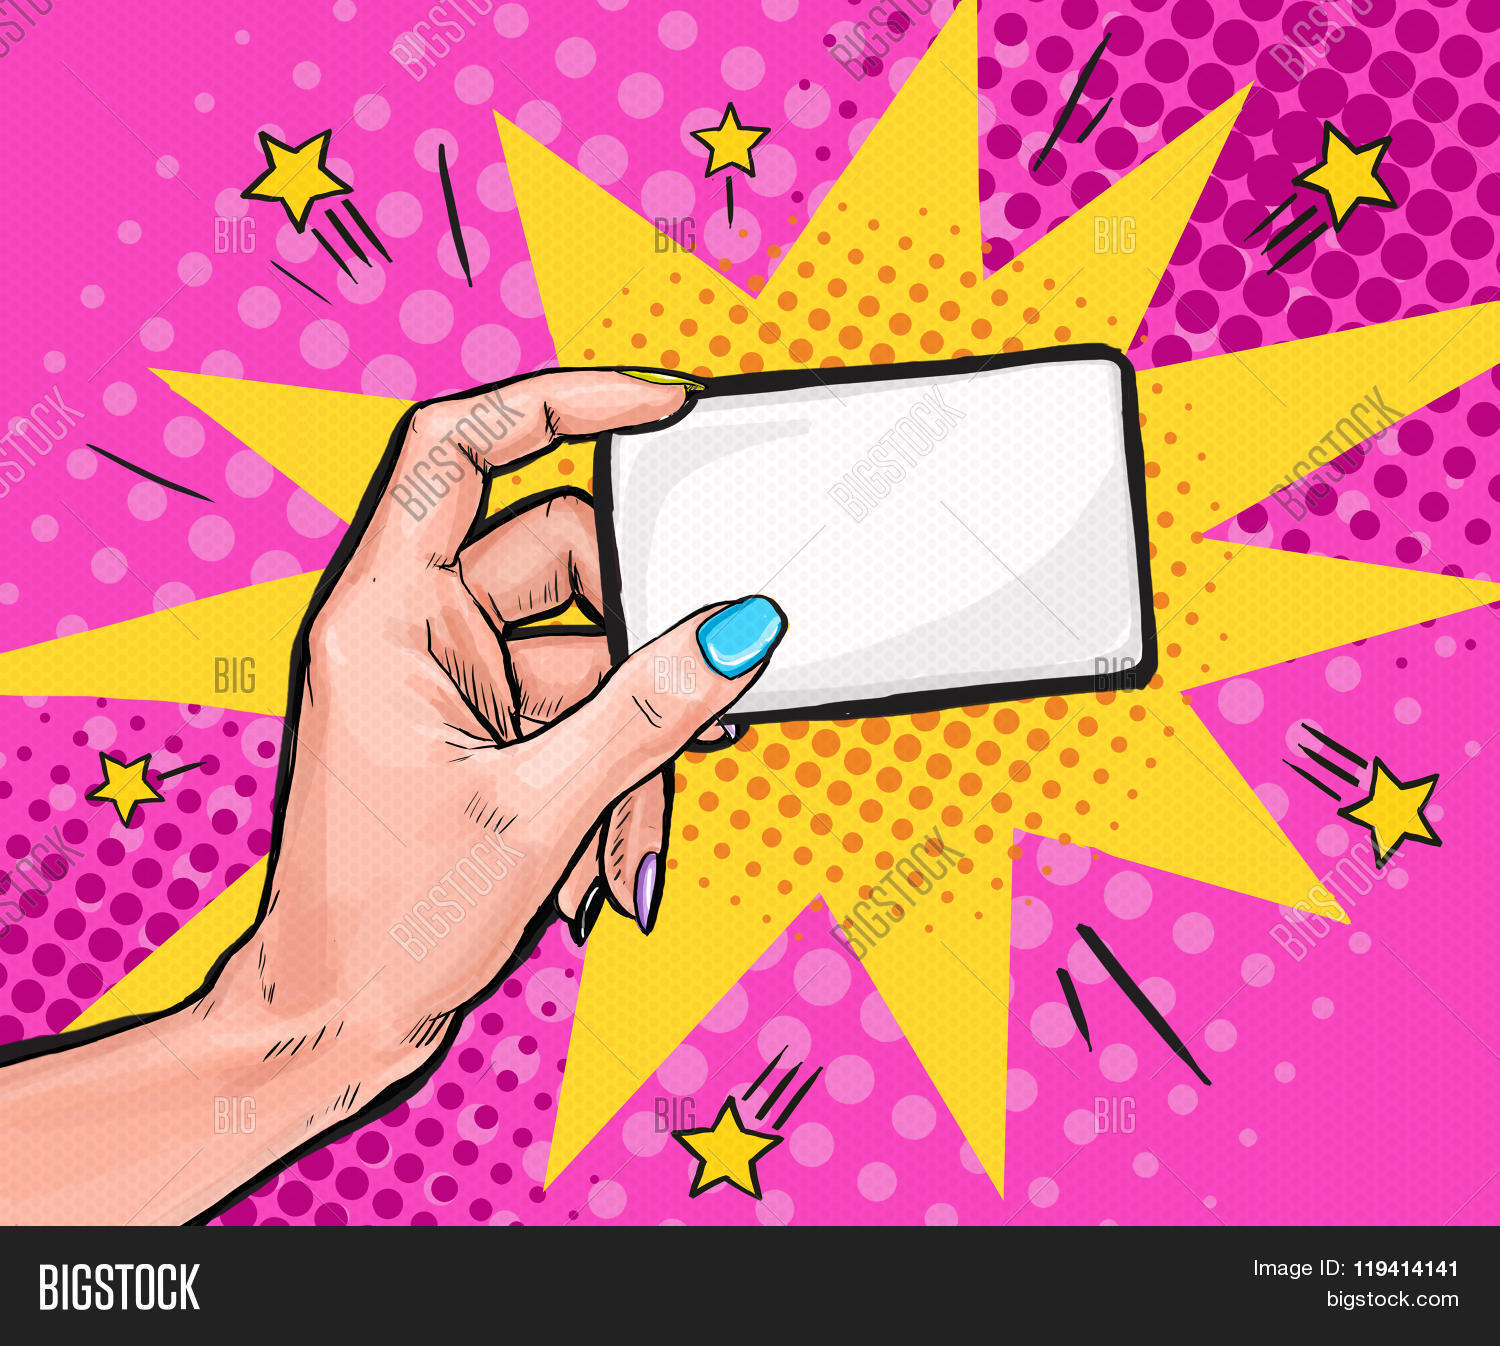 Female Hand Holding A Card In Pop Art StylePop Background Party Invitation Create Lightbox